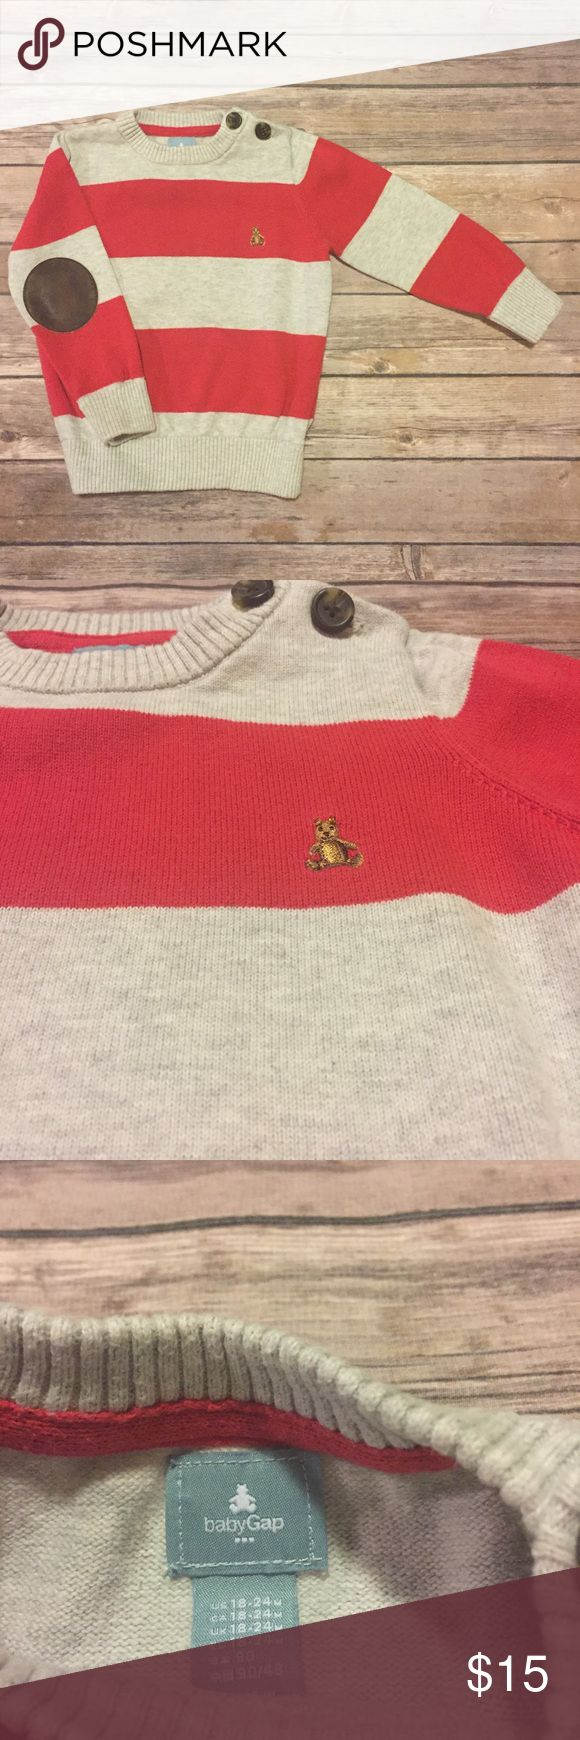 Baby Gap (outlet) Striped Sweater, 18-24 months Baby Gap (outlet) Striped Sweater, 18-24 months, lightweight knit crew neck sweater in red and grey stripes, buttons at shoulder, brown leather elbow patches. VGUC for second owner and light wash wear. GAP Shirts & Tops Sweaters